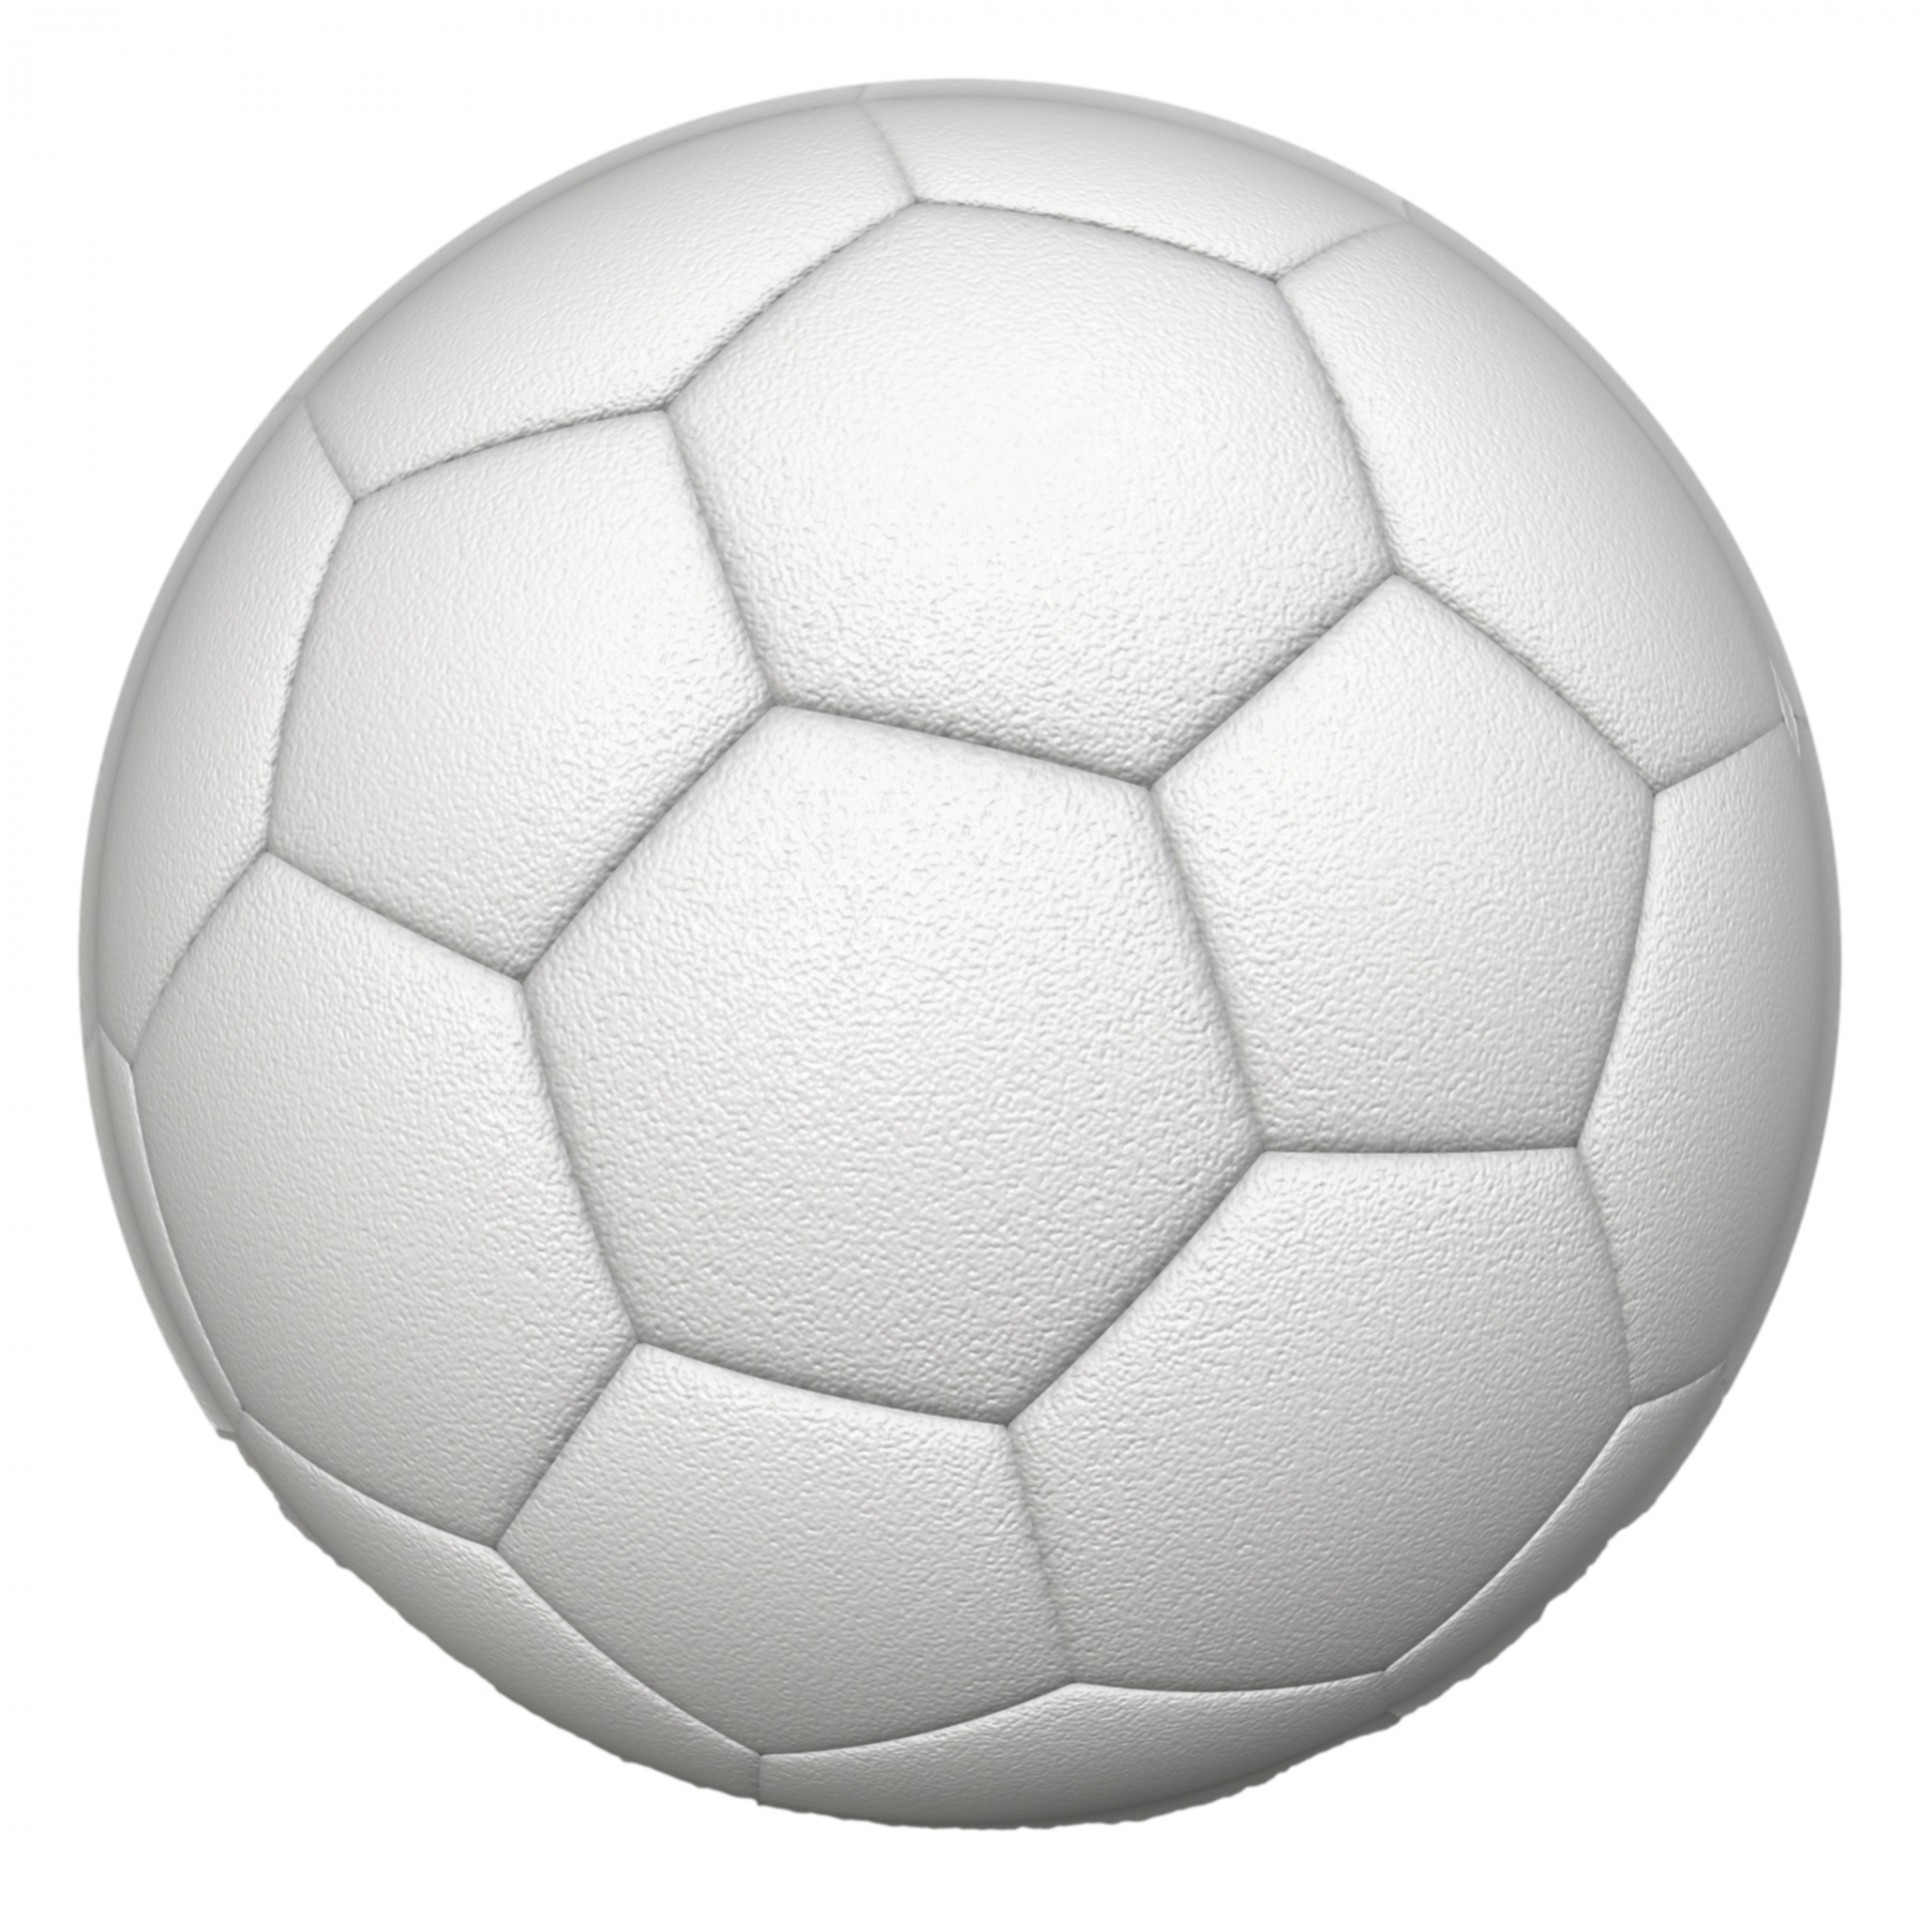 White Soccer Ball Free Stock Photo - Public Domain Pictures